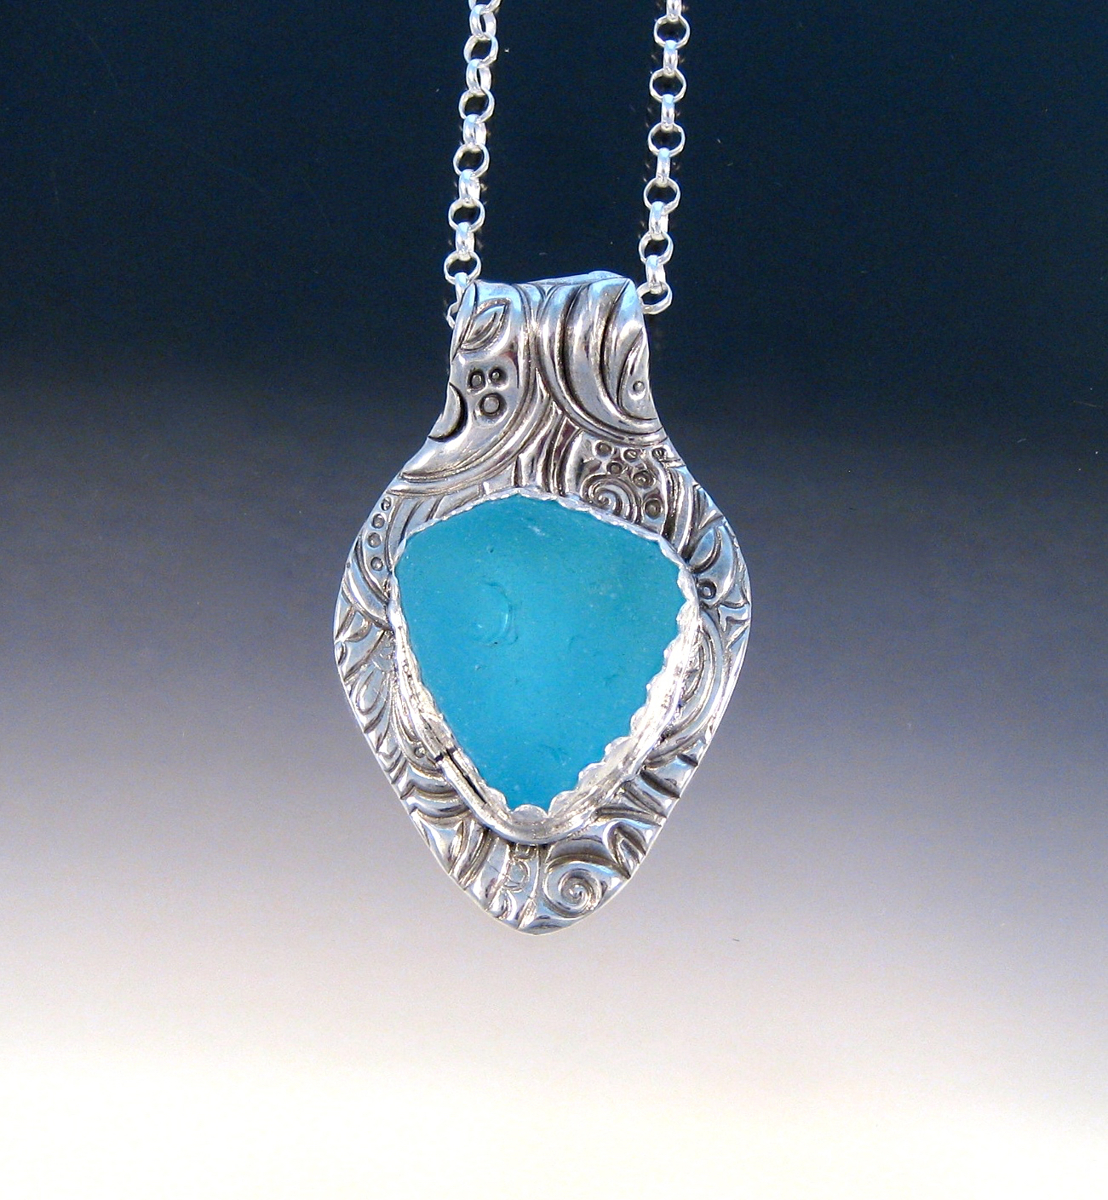 P5252 - Bright baby blue sea glass pendant (large view)